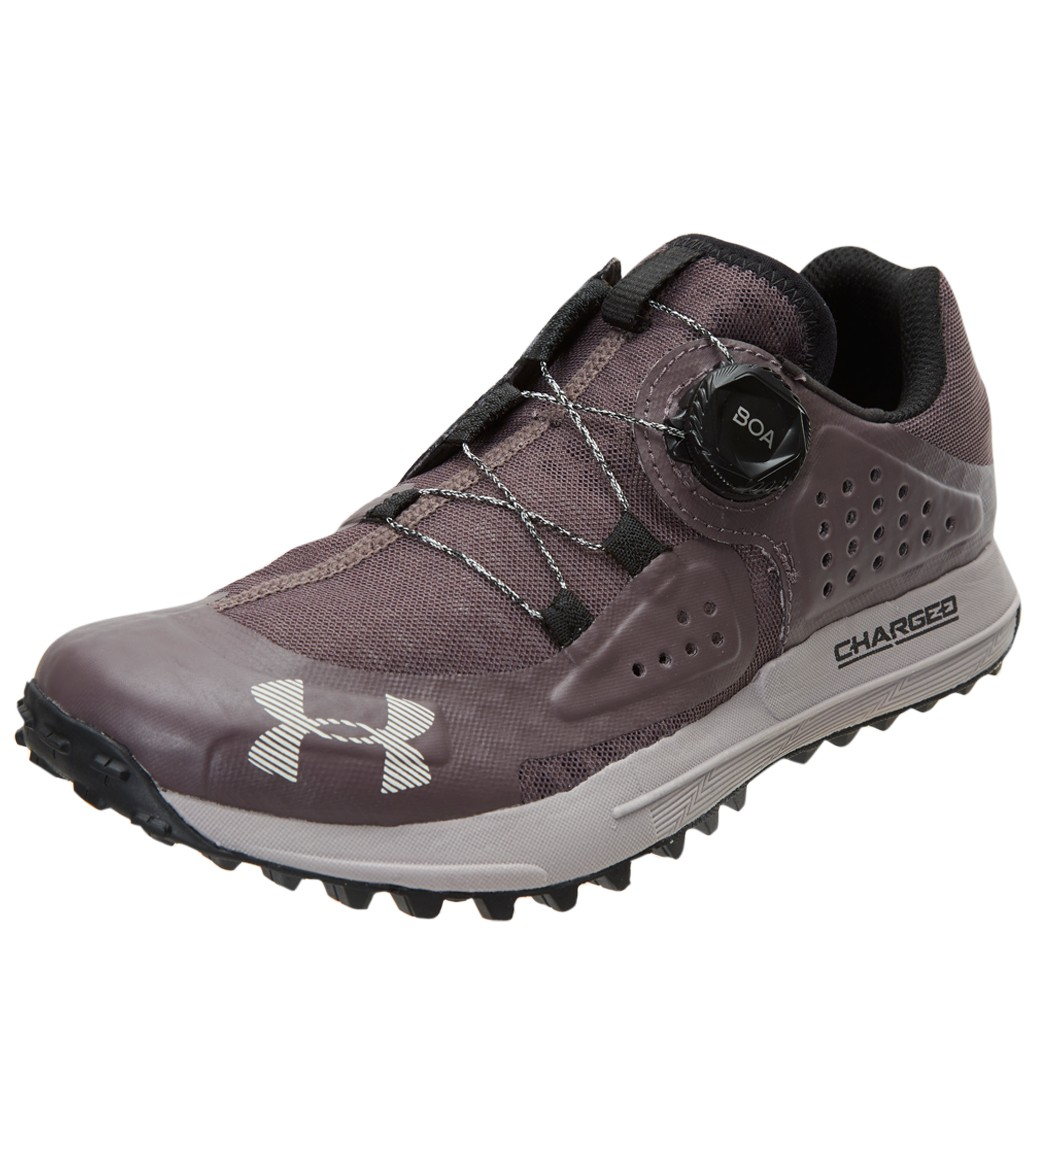 2f063715ff3 Under Armour Women's Syncline Water Shoe at SwimOutlet.com - Free Shipping